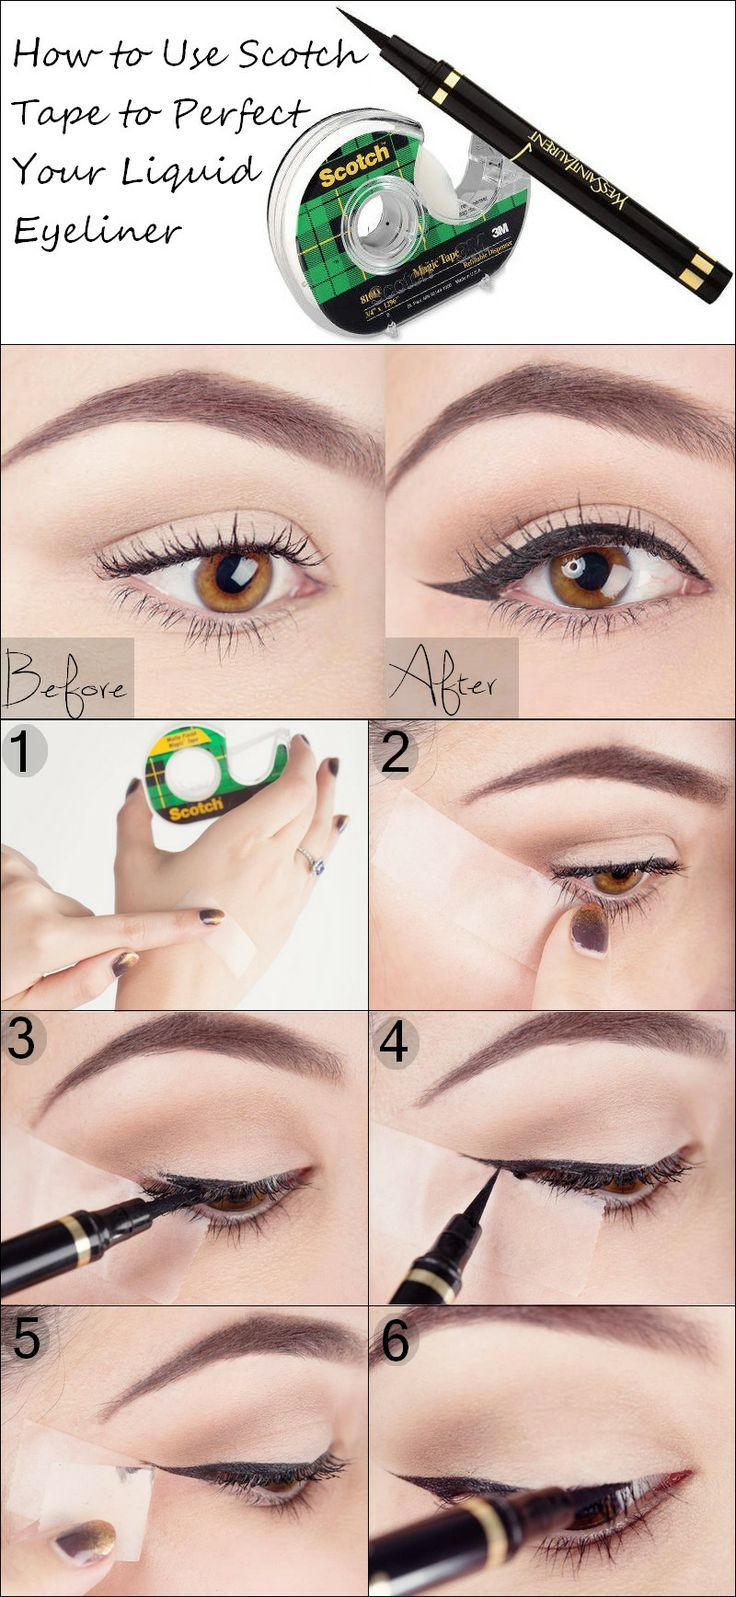 Pin on Makeup tipss